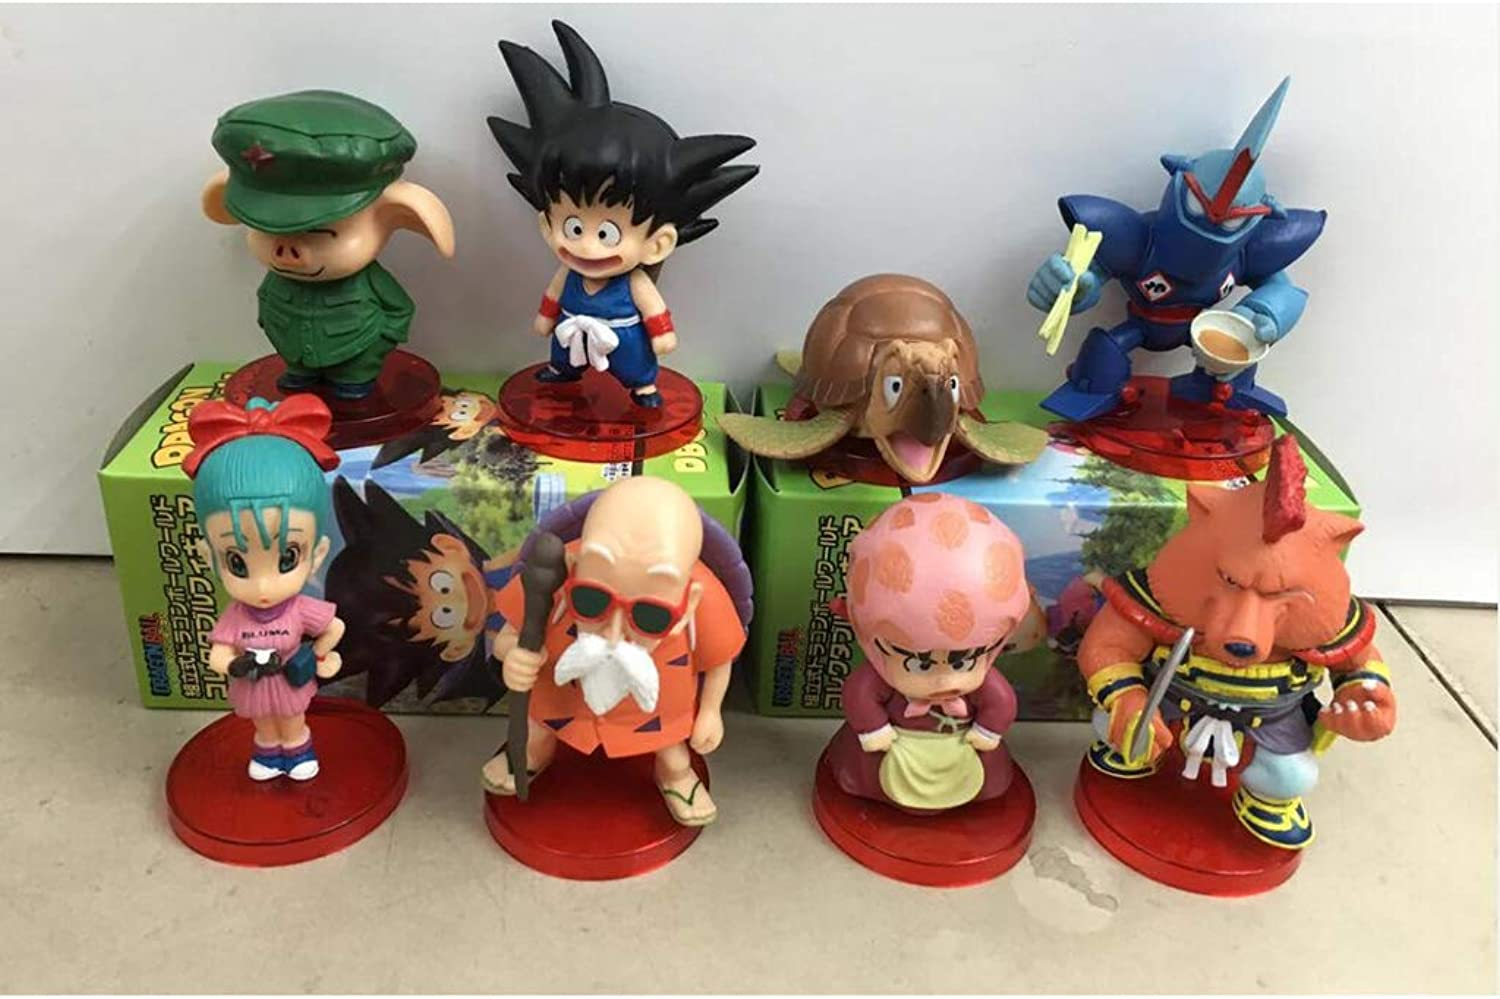 Toy Statue Toy Model Cartoon Character Collection Souvenir   8 Set JSFQ